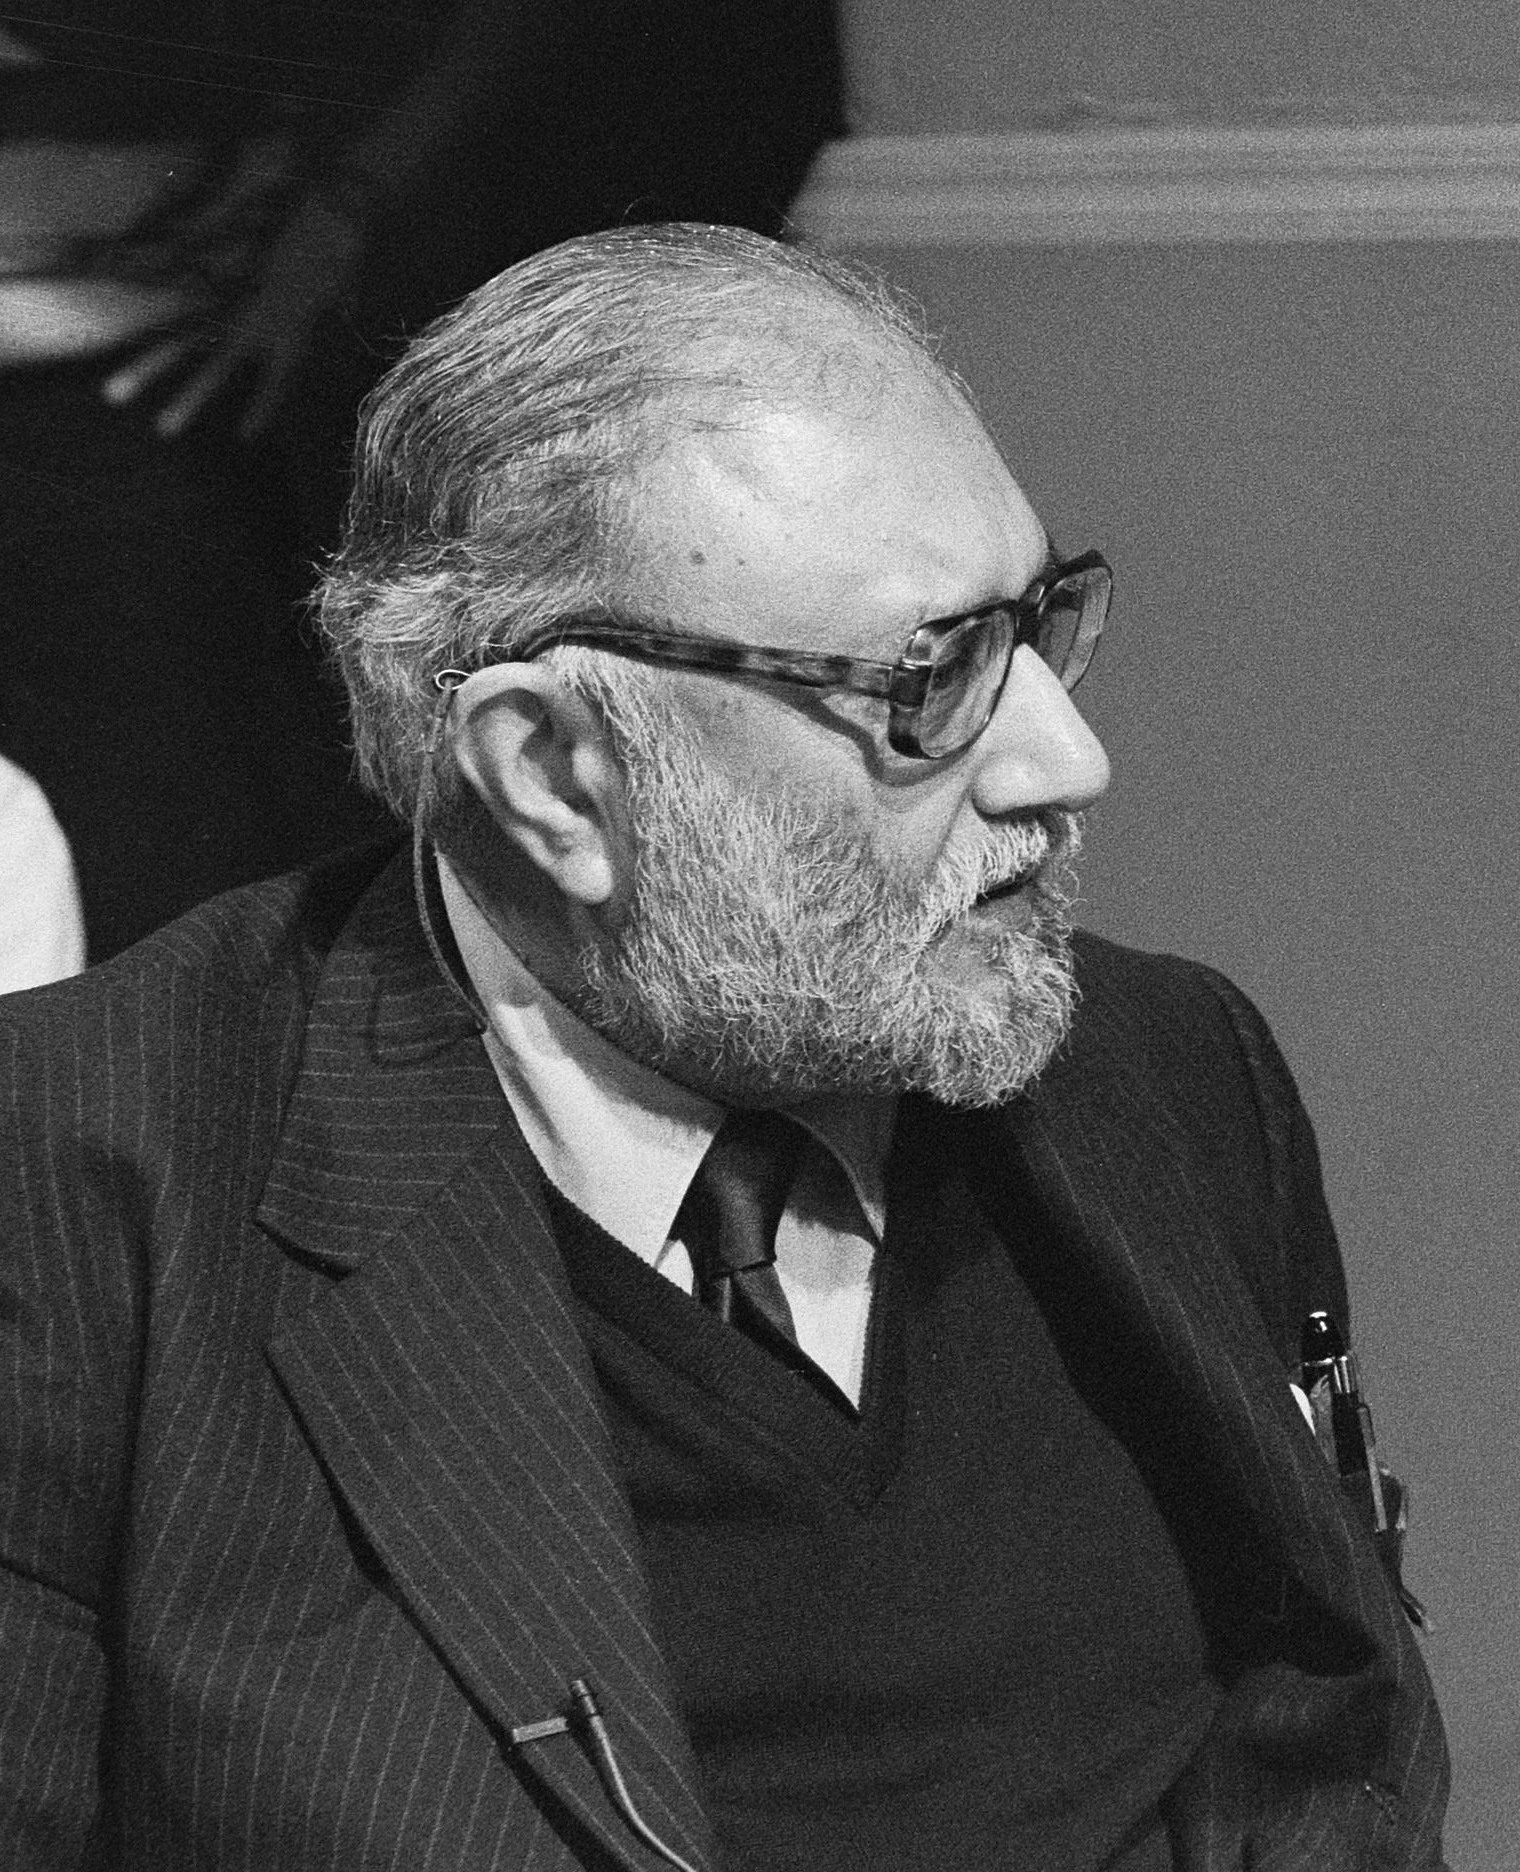 Nobel Laureate Abdus Salam in 1987. Photo: Molendijk, Bart / Anefo (CC BY-SA 3.0 NL).